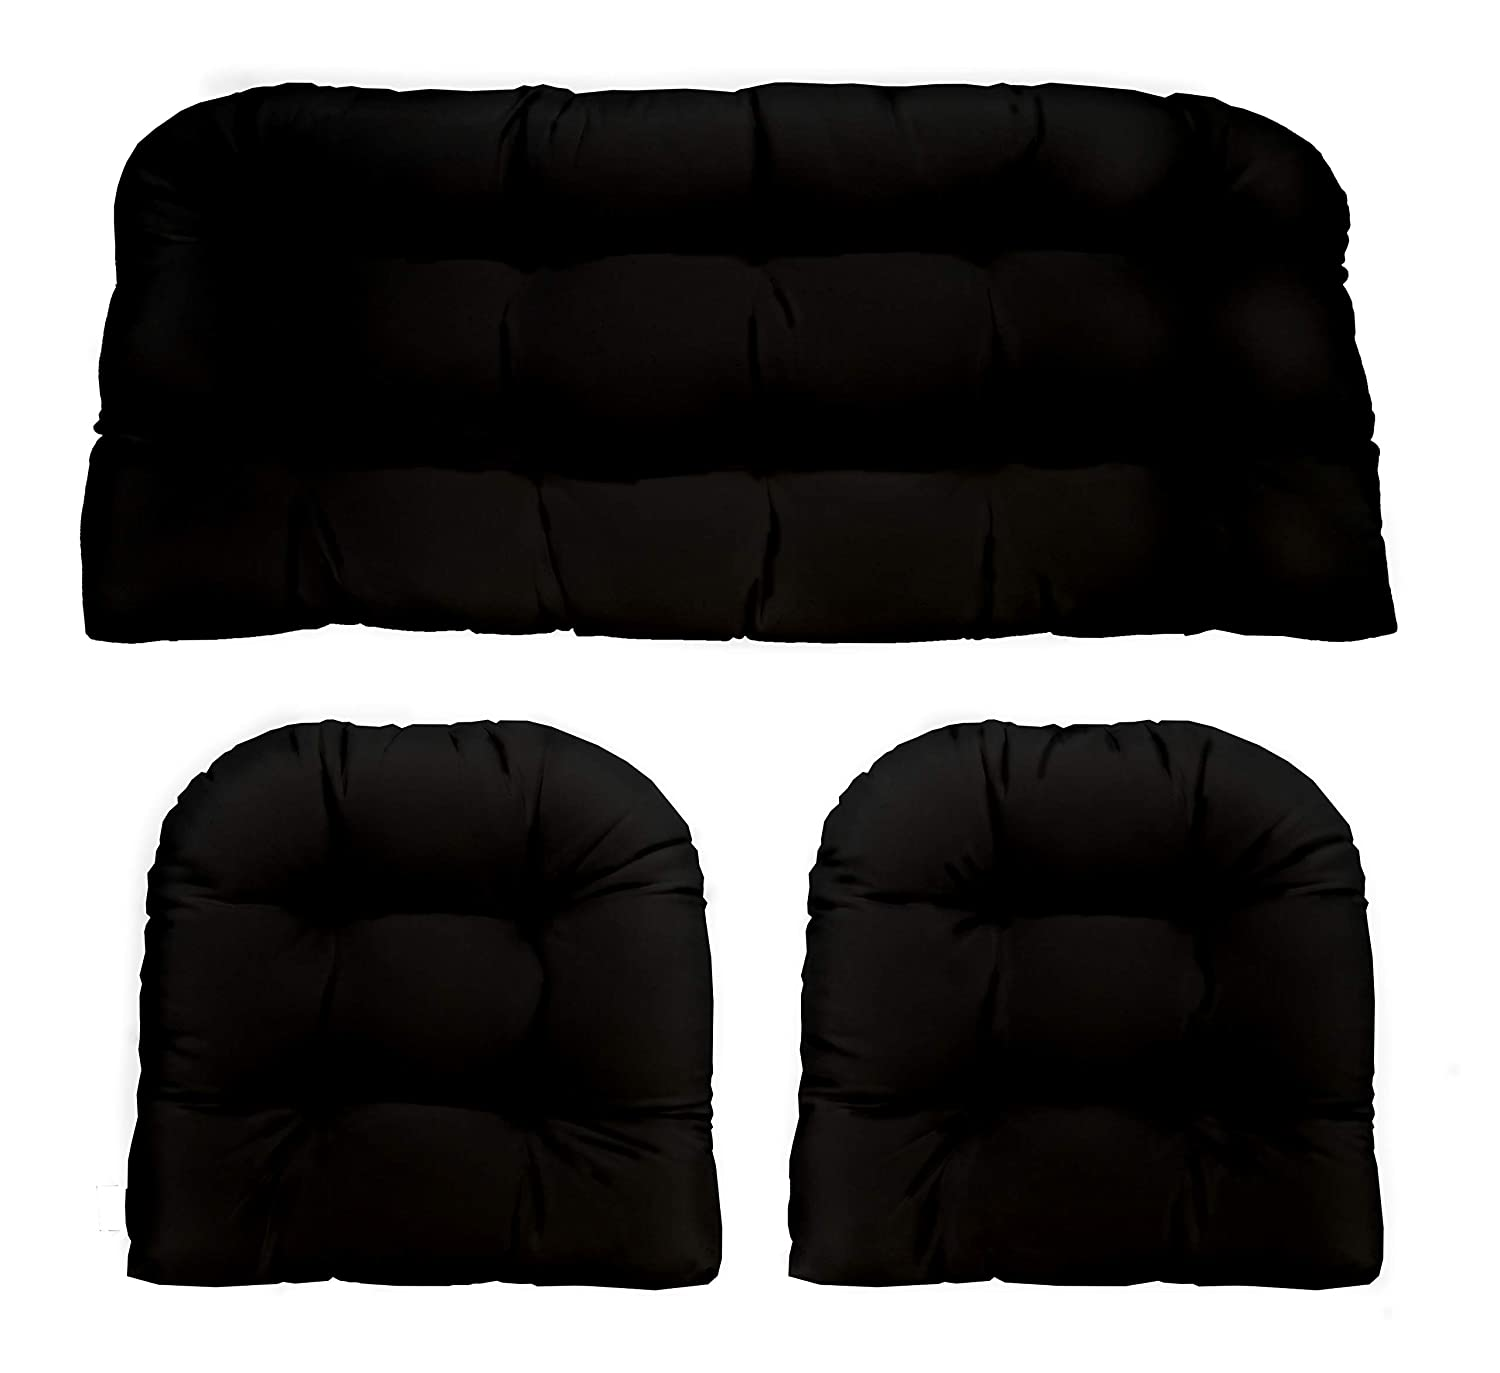 3 Piece Wicker Cushion Set – Indoor Outdoor Black Solid Fabric Cushion for Wicker Loveseat Settee 2 Matching Chair Cushions